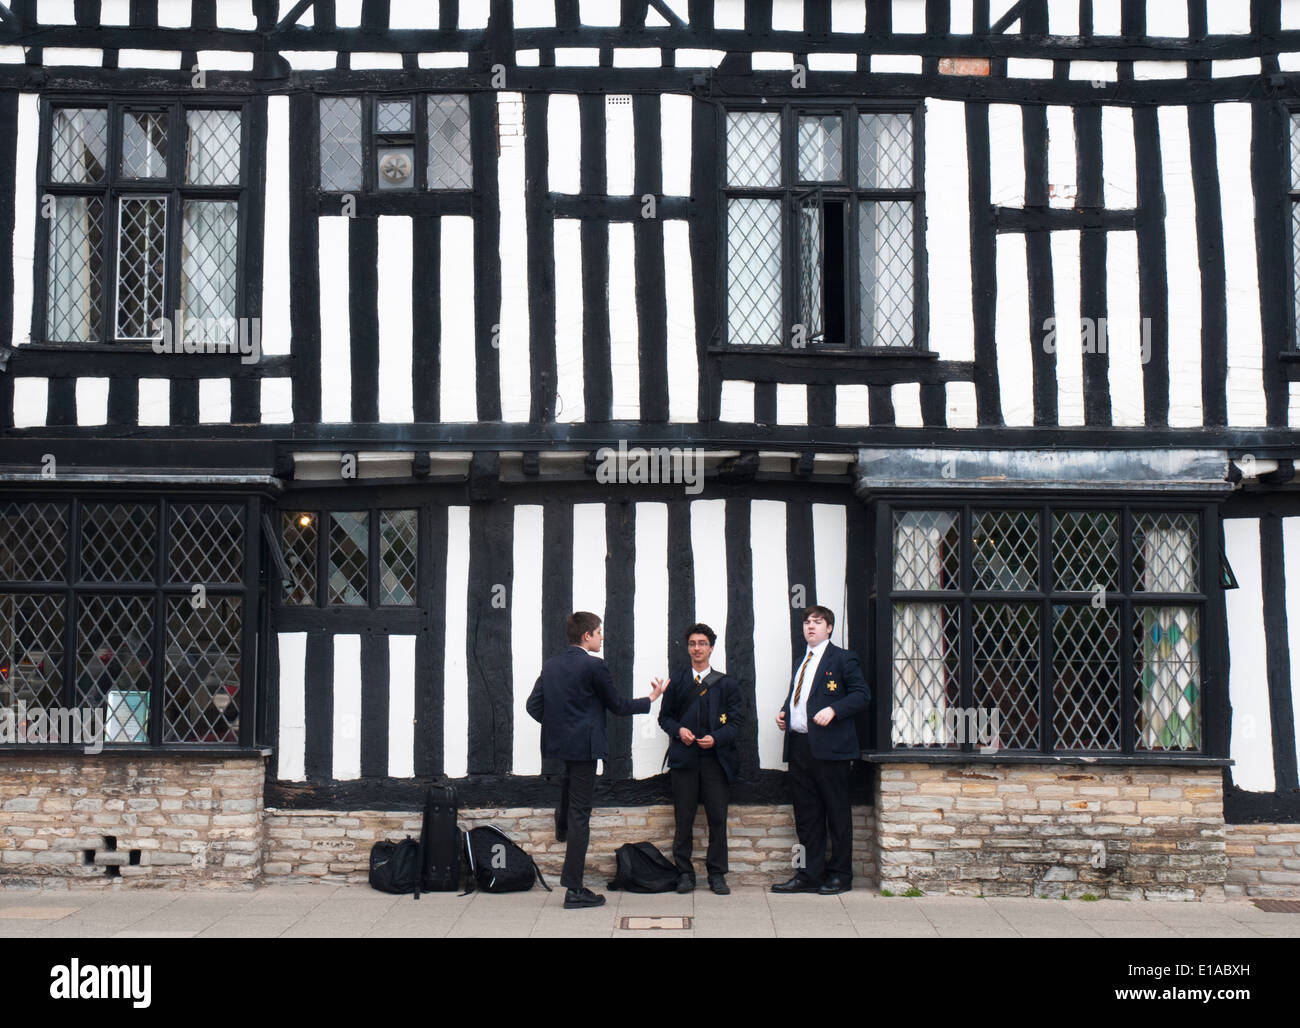 Schoolboys outside the Tudor-style half-timbered Falcon Hotel in Stratford-upon-Avon, England - Stock Image